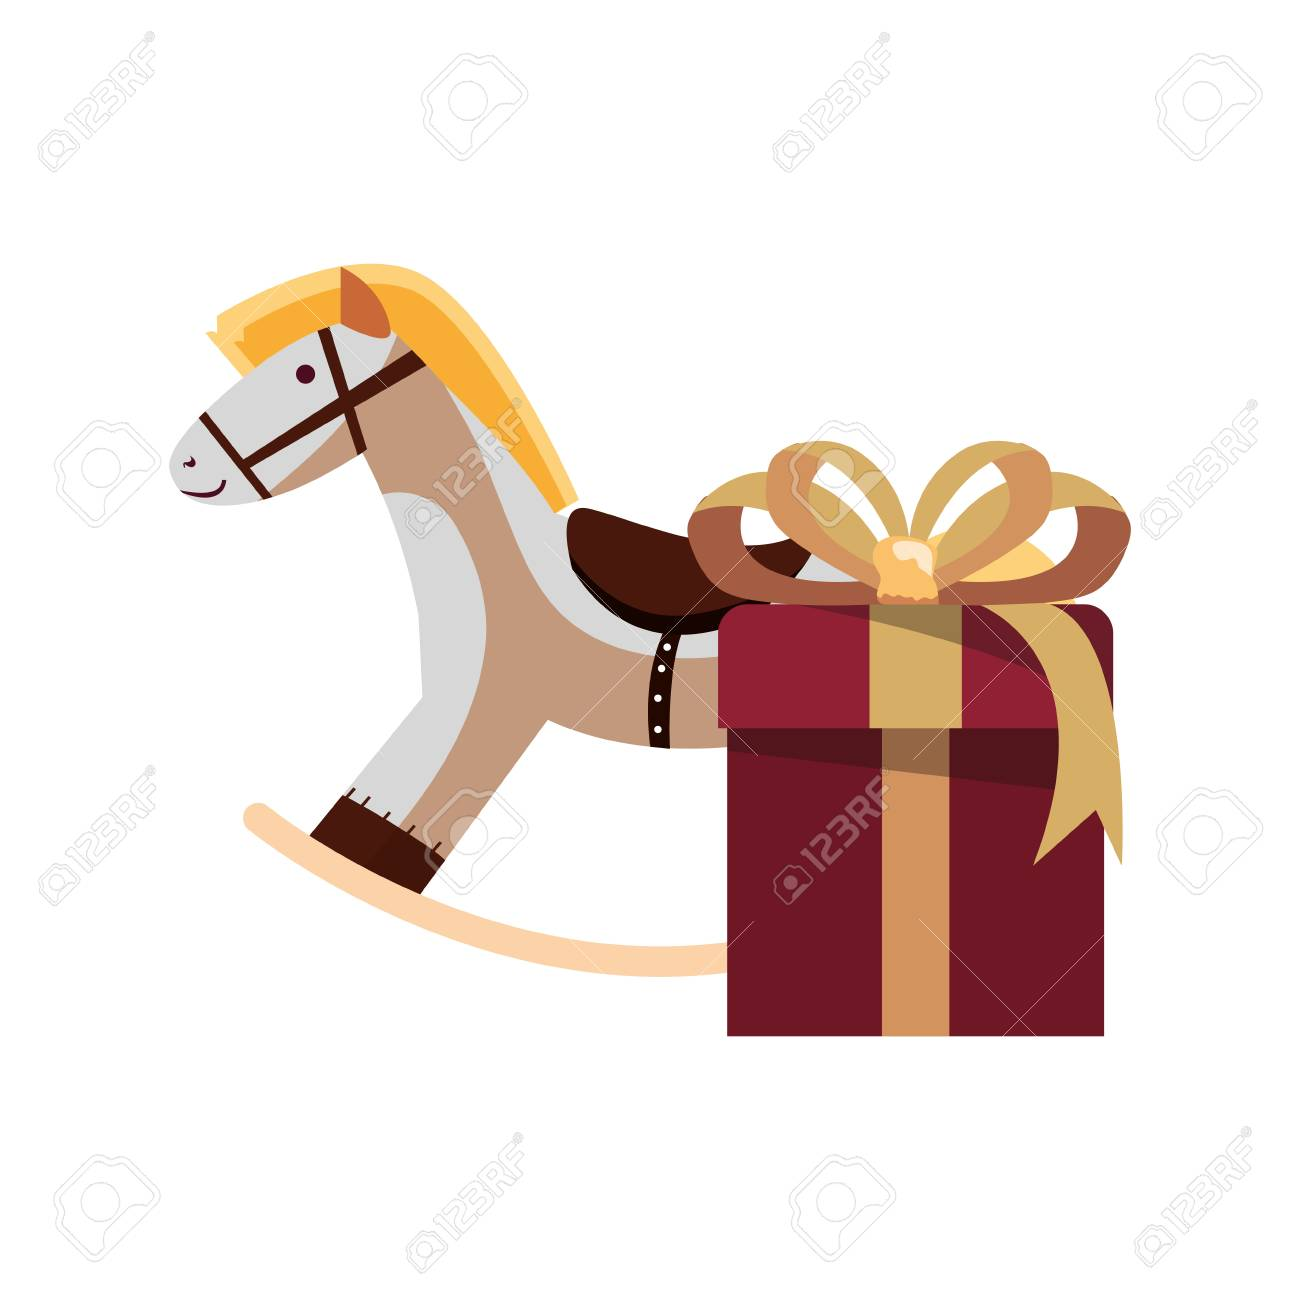 Christmas Rocking Horse Gift Box Vector Illustration Royalty Free Cliparts Vectors And Stock Illustration Image 127032252